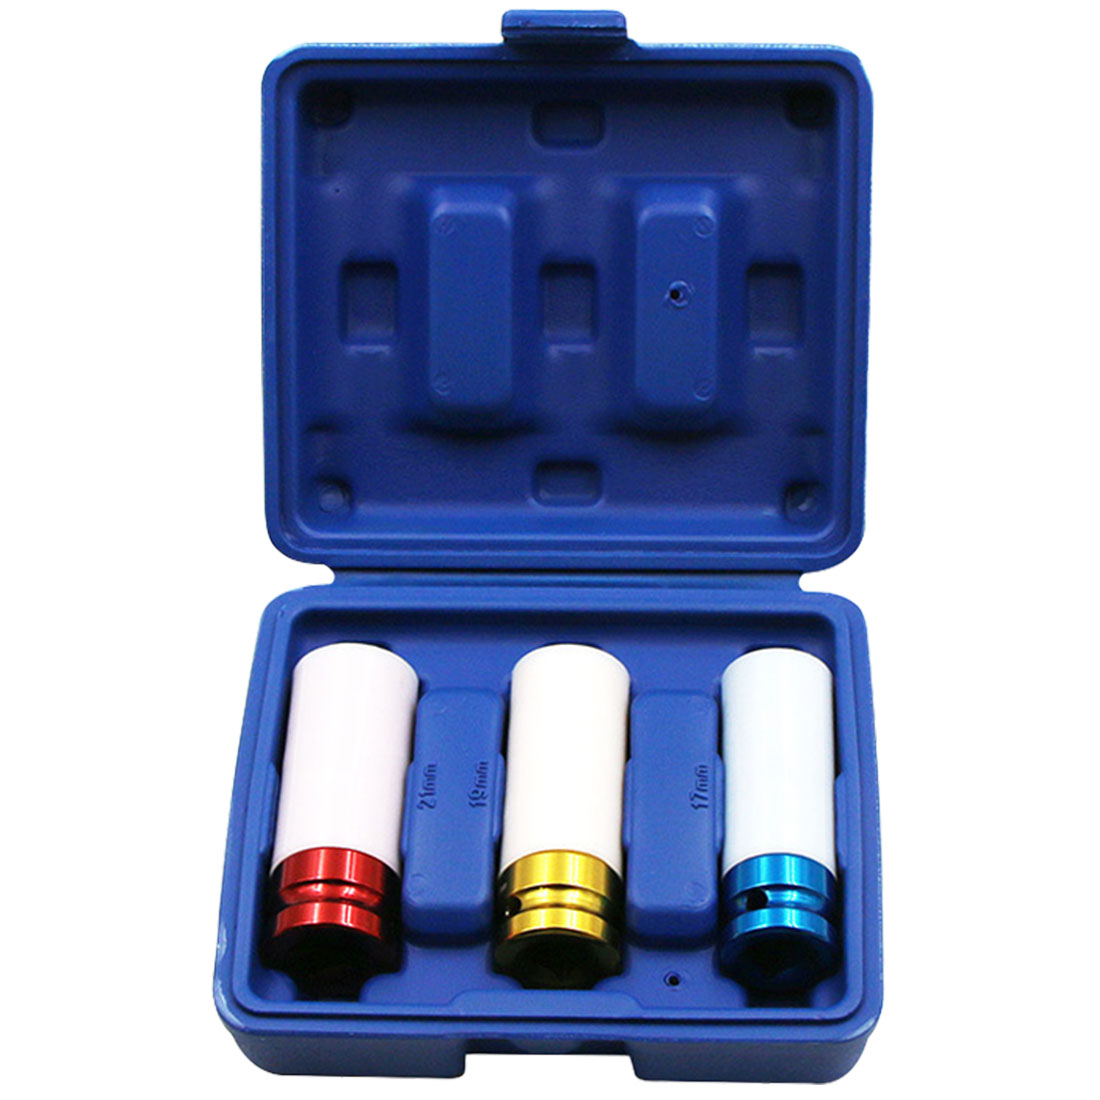 Tools : Sleeves 17 19 21mm Car Tire Protection Sleeves 3pcs Set Wall Deep Impact Nut Alloy Wheel Socket Red Blue Yellow